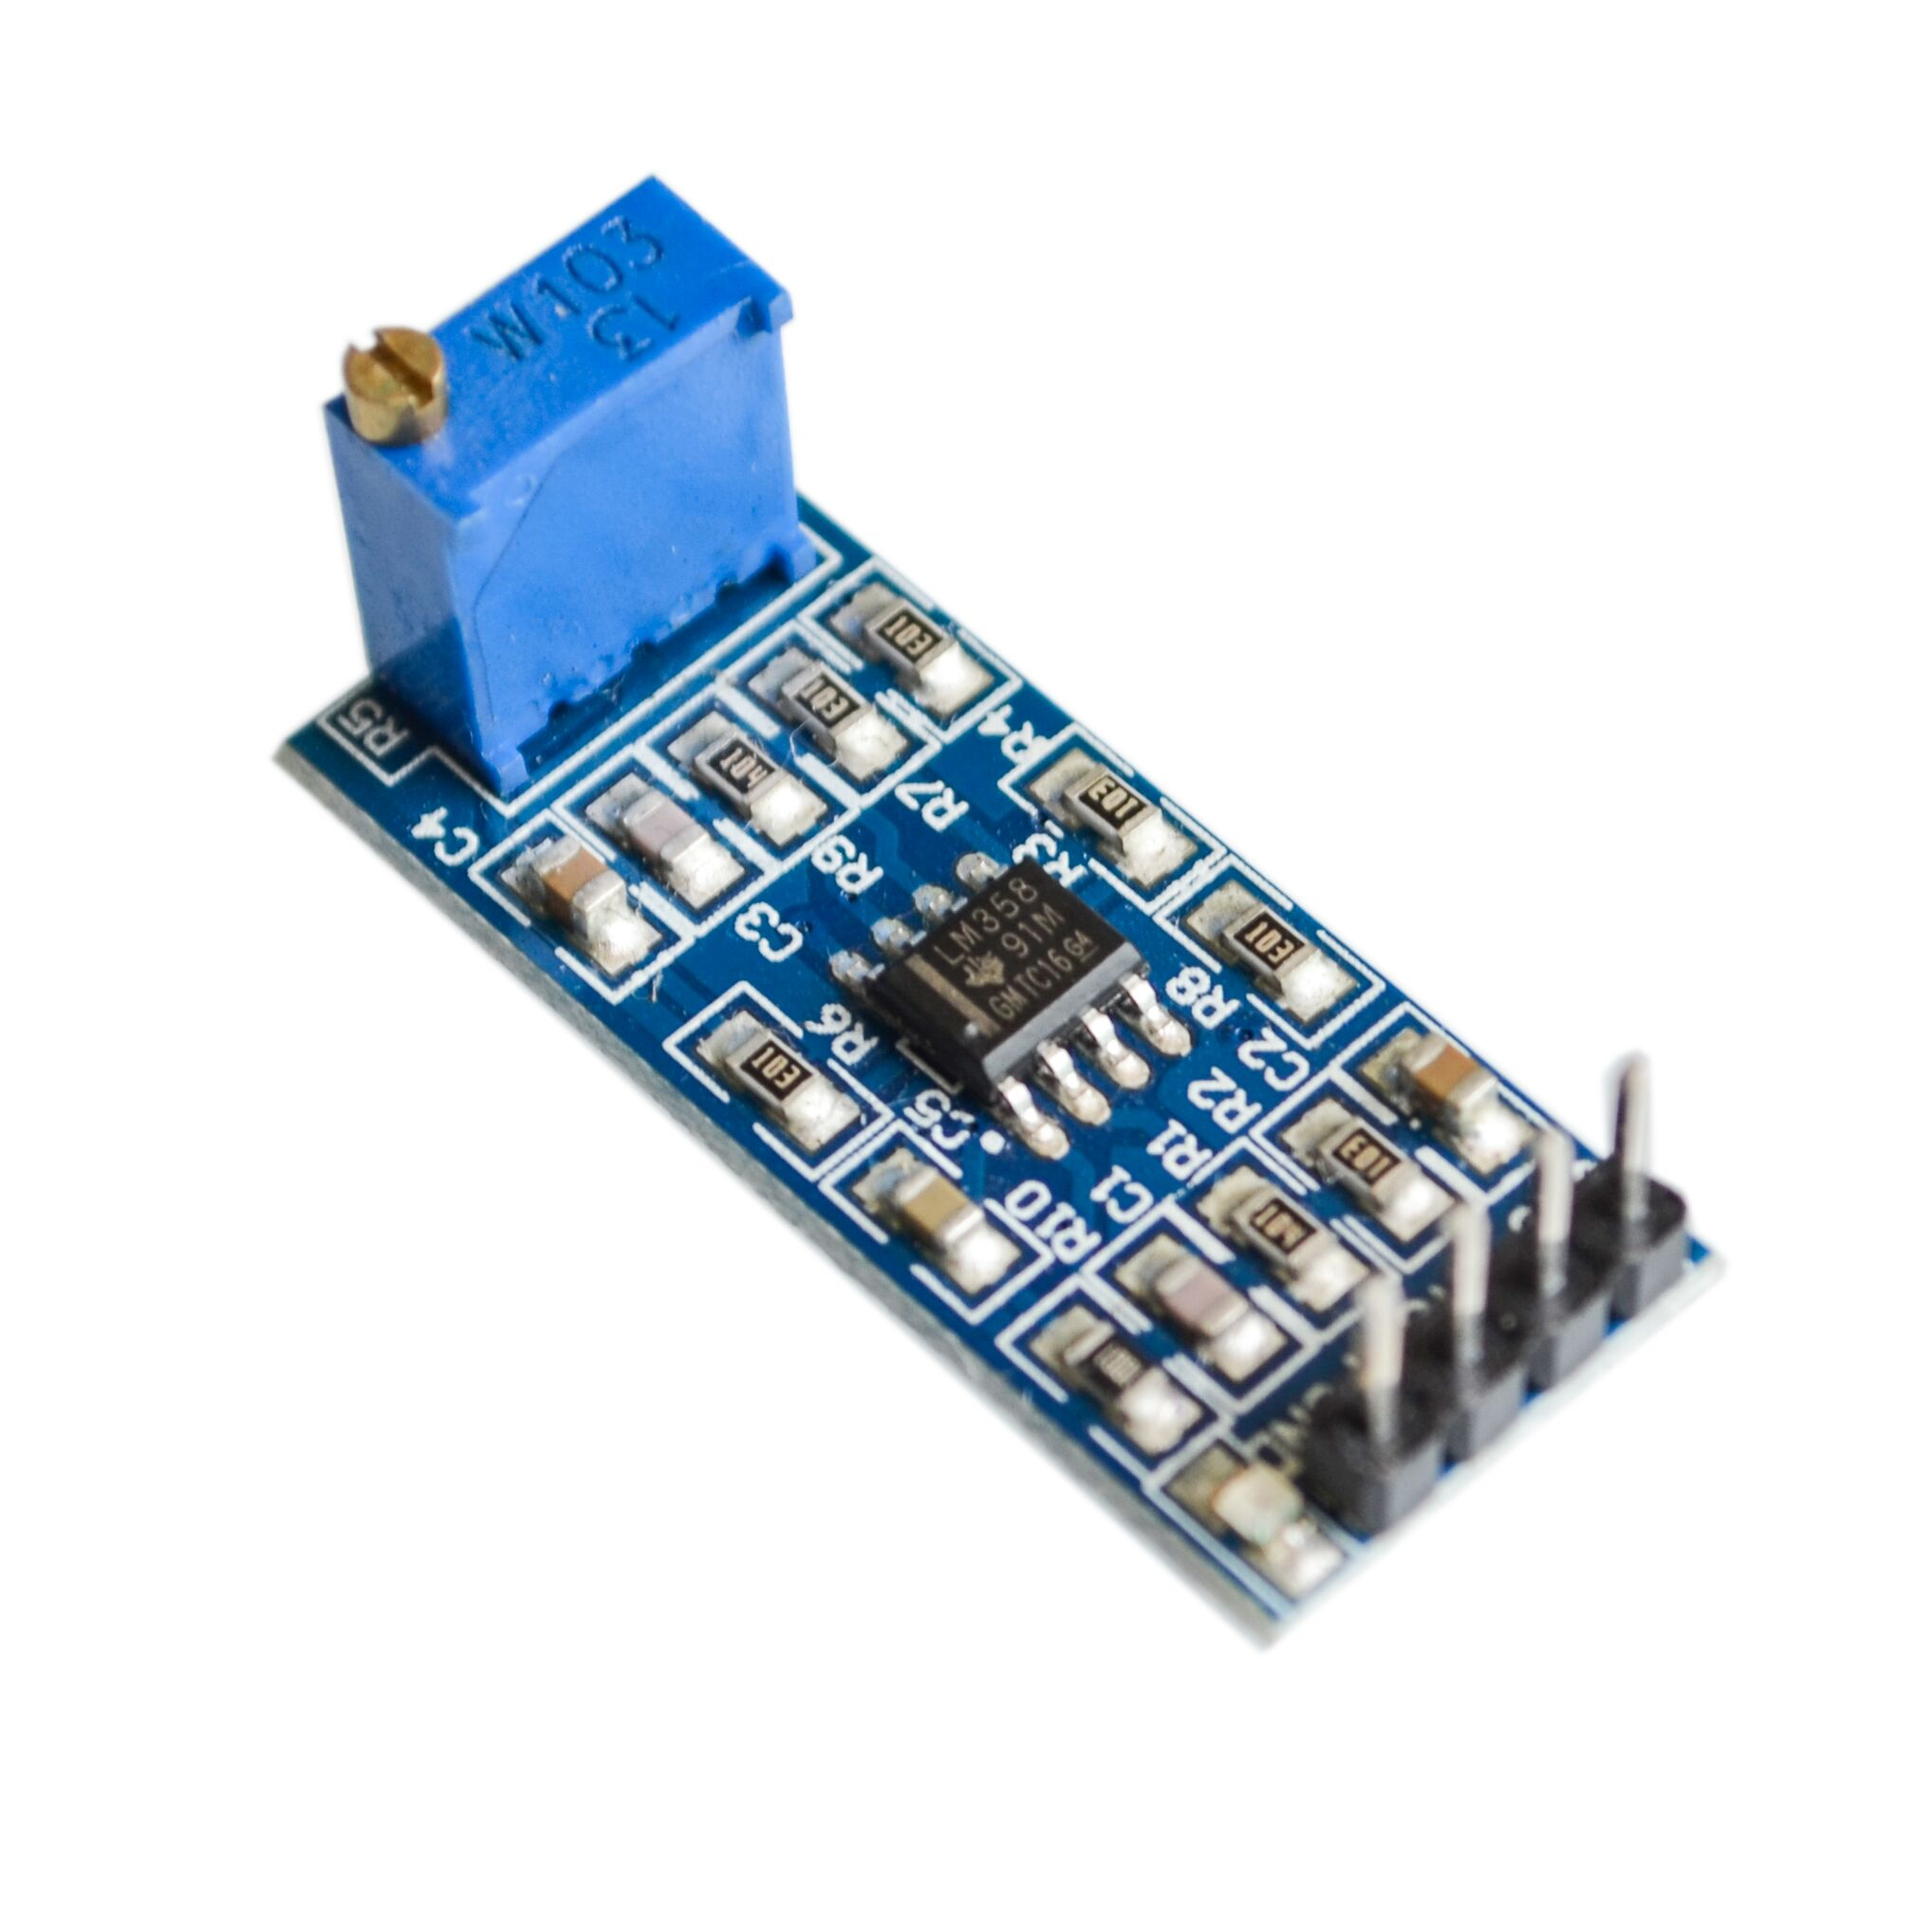 lm358 operational amplifier - LM358 100 times gain amplification module operational amplifier module